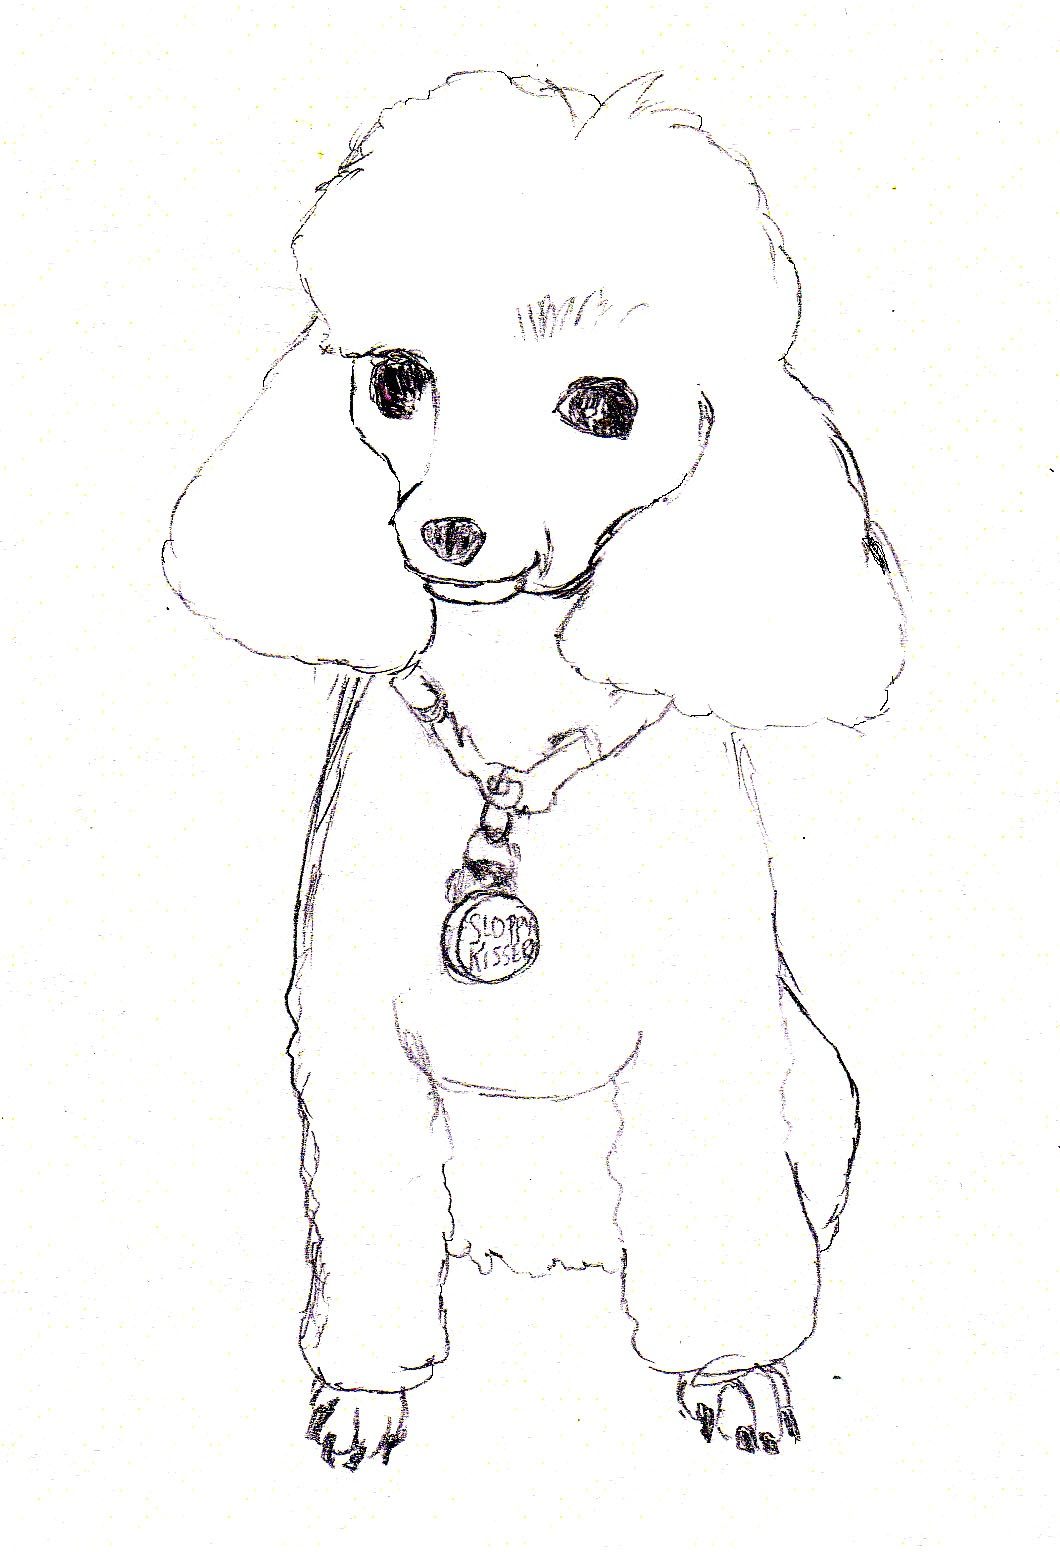 Drawn poodle themed Caricature sketching poodle Google Poodle